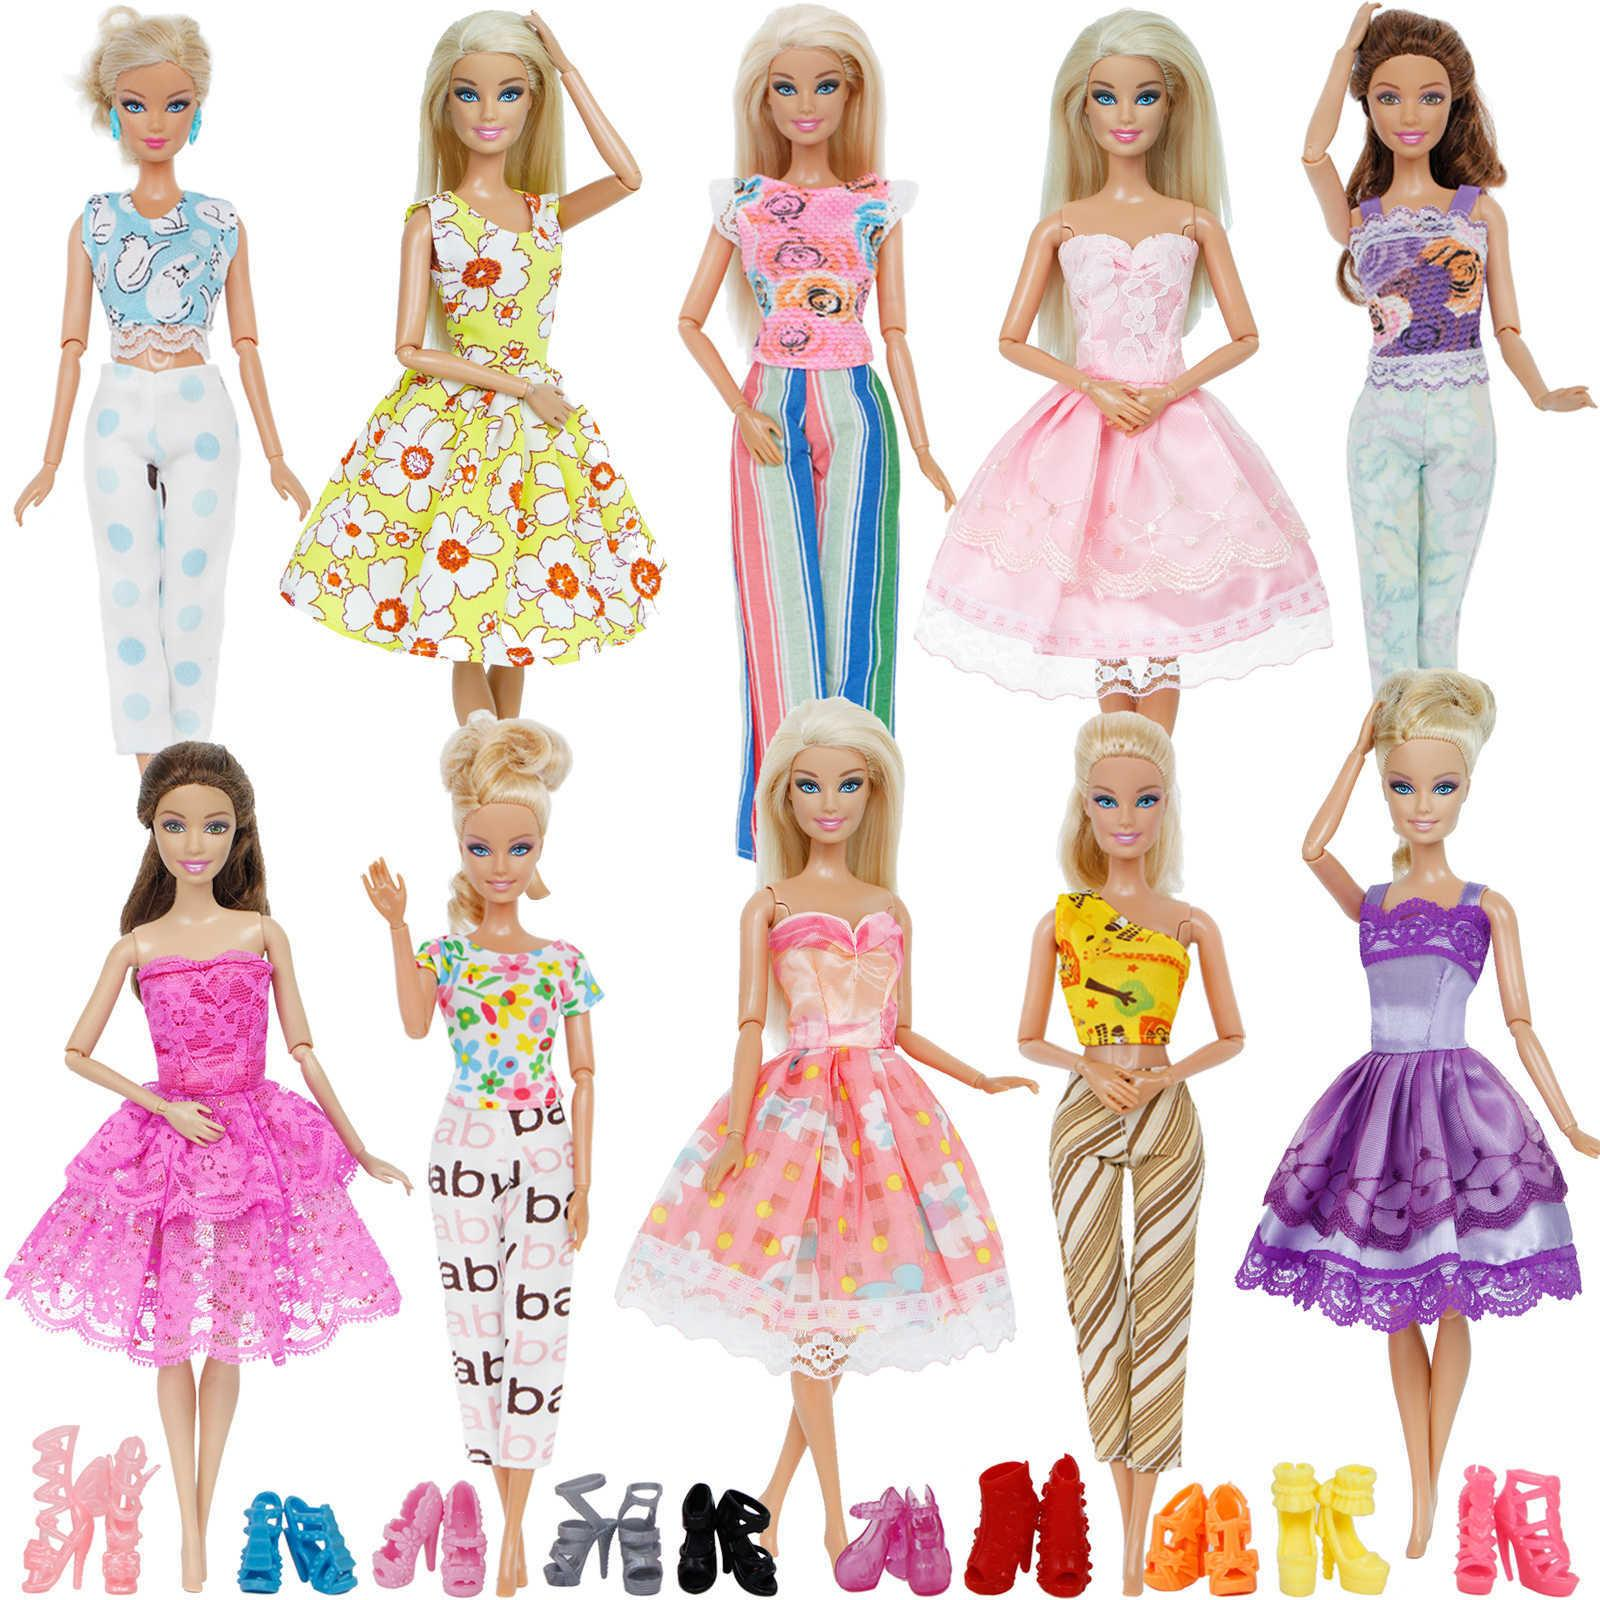 Clothes 5 Handmade Dress /& 10 shoes for 11.5 inches Doll 20-piece Doll Dresses